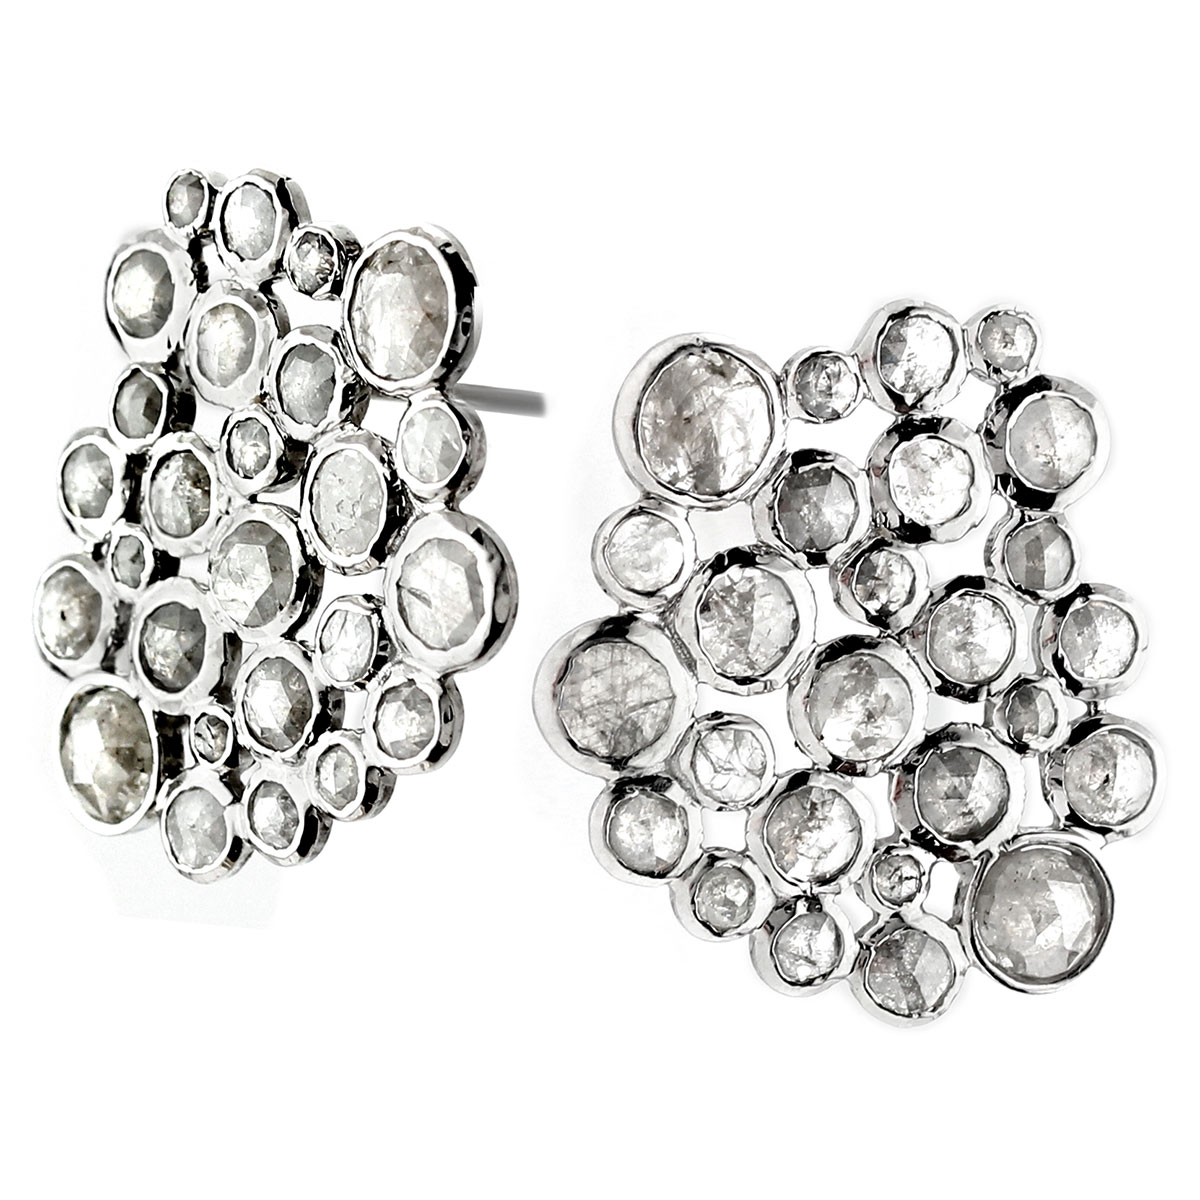 341248-Raw Diamond Earrings